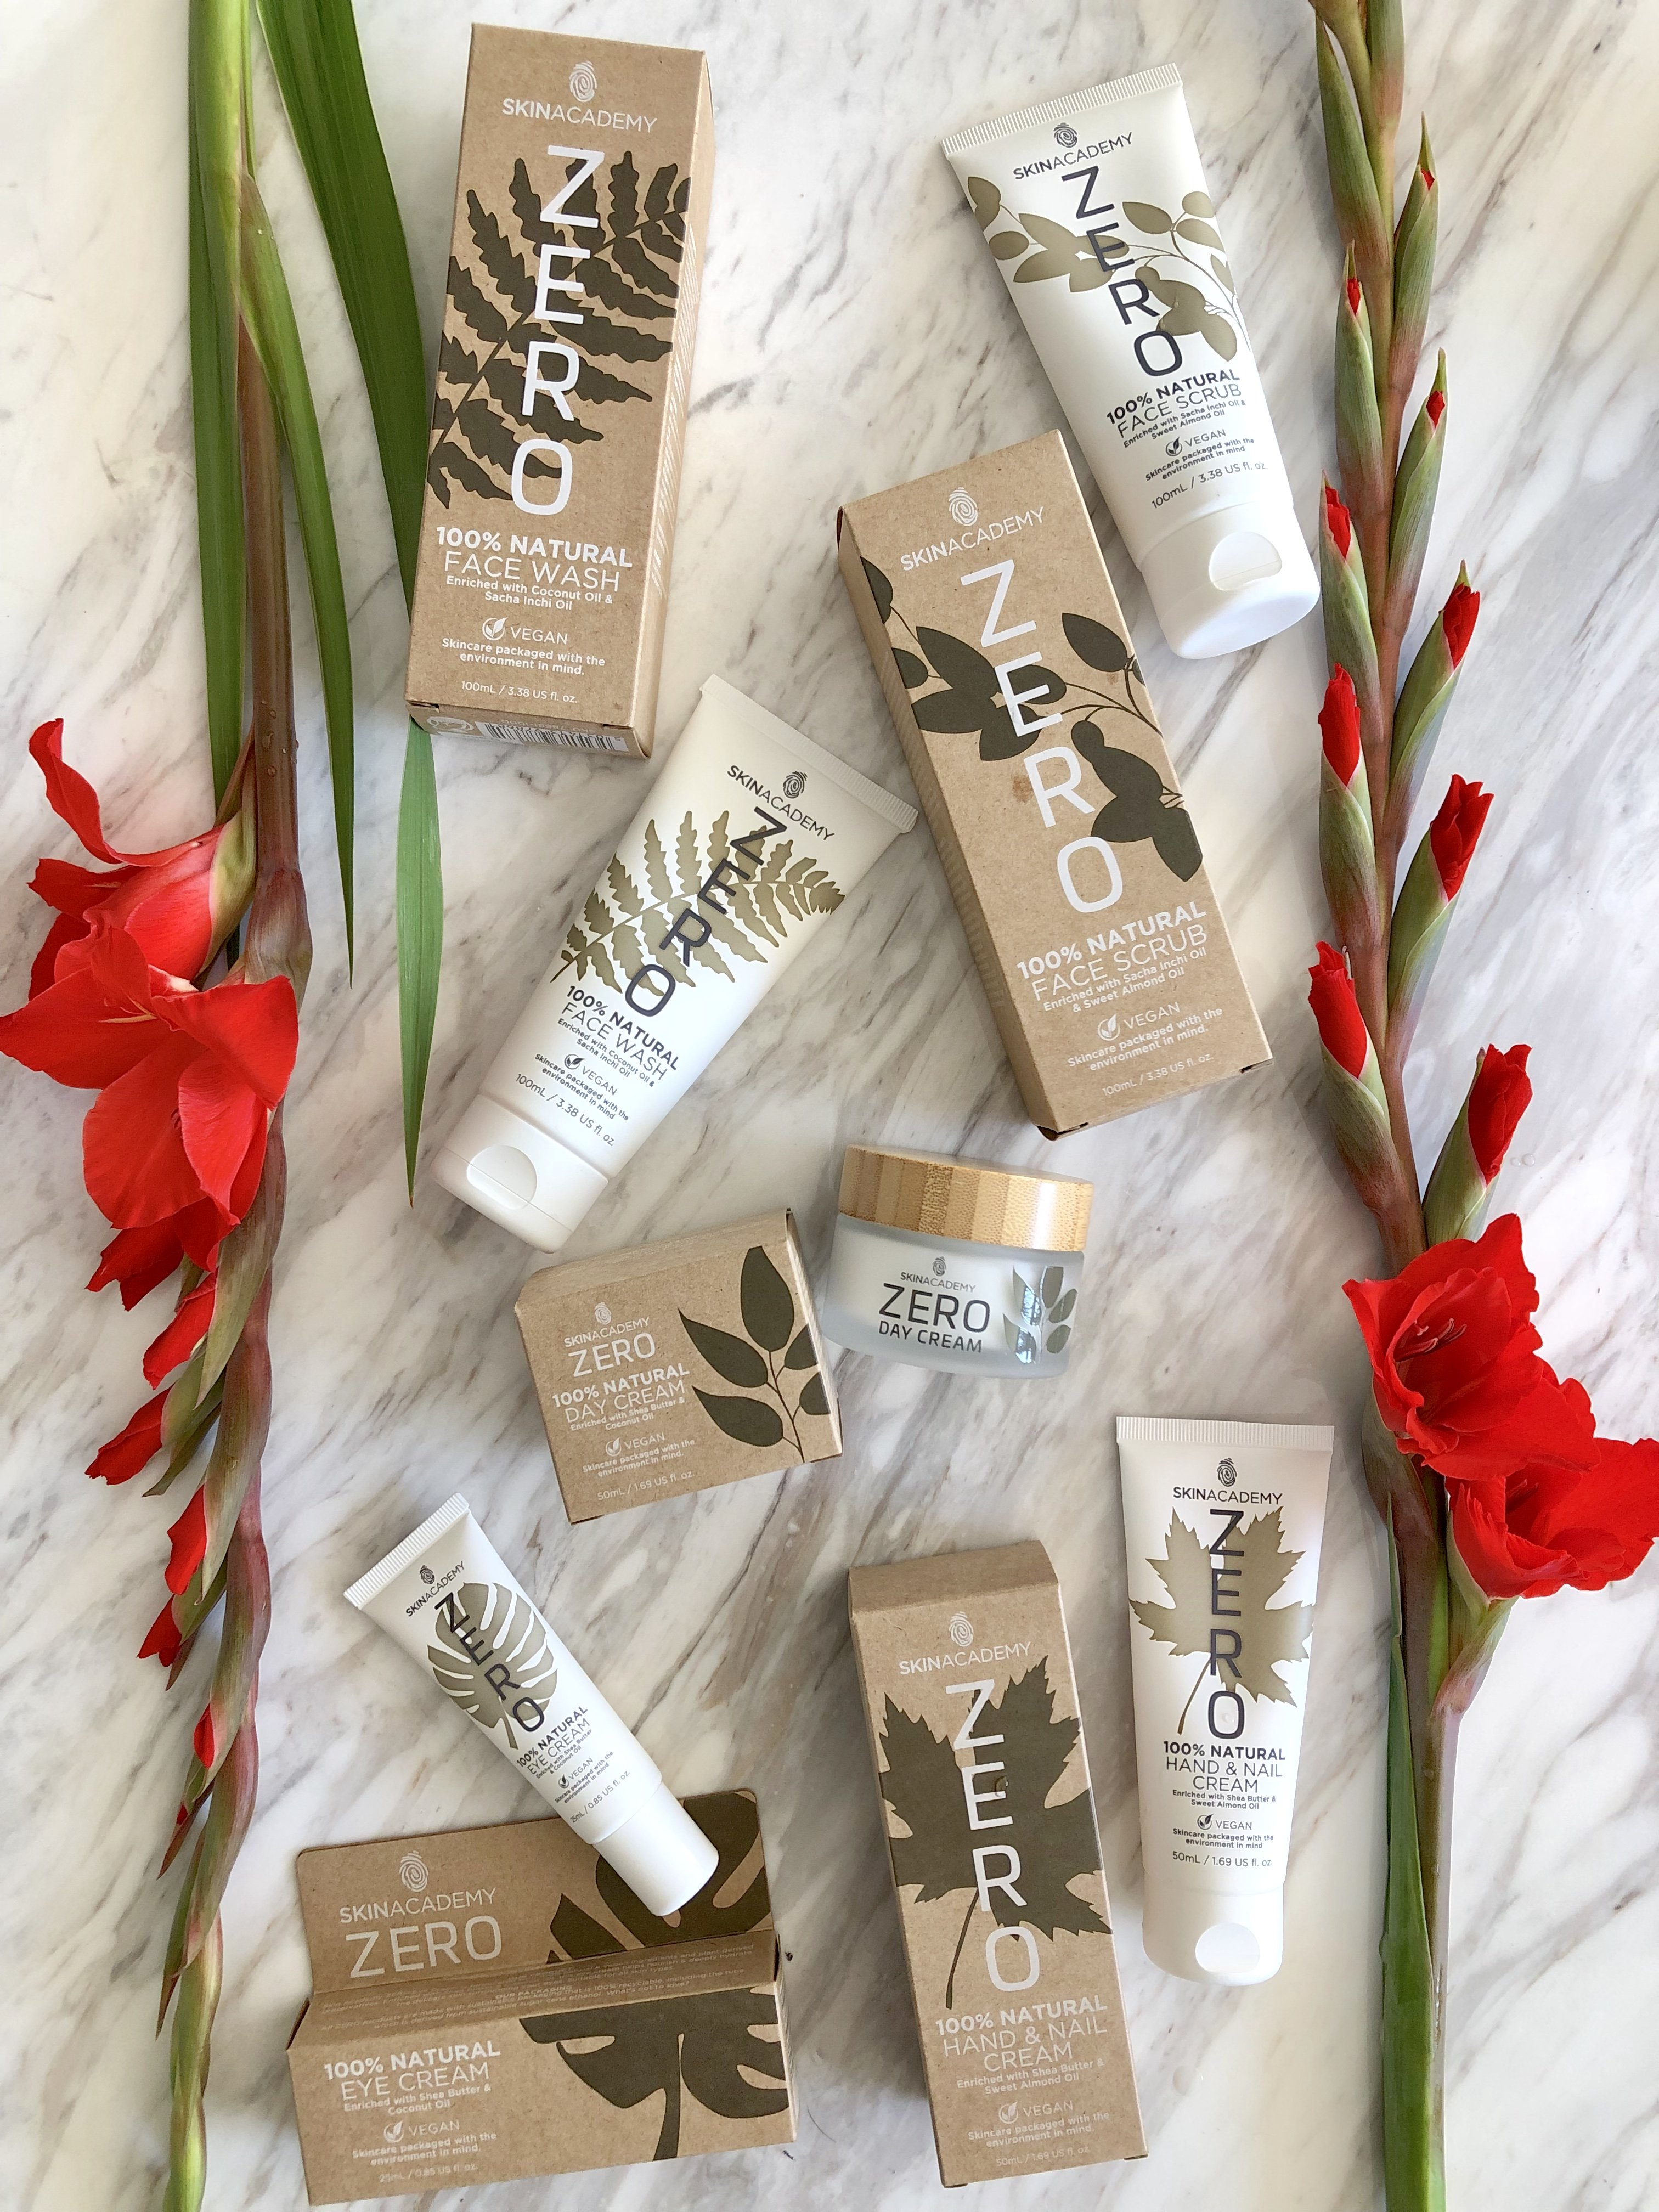 Skin Academy Zero skin care is high quality, 100% natural face and body care which has environmentally friendly packaging and is also vegan! Skin Academy Zero skin care is a range of products such a face wash and day cream which areultra hydrating as well as nourishing.